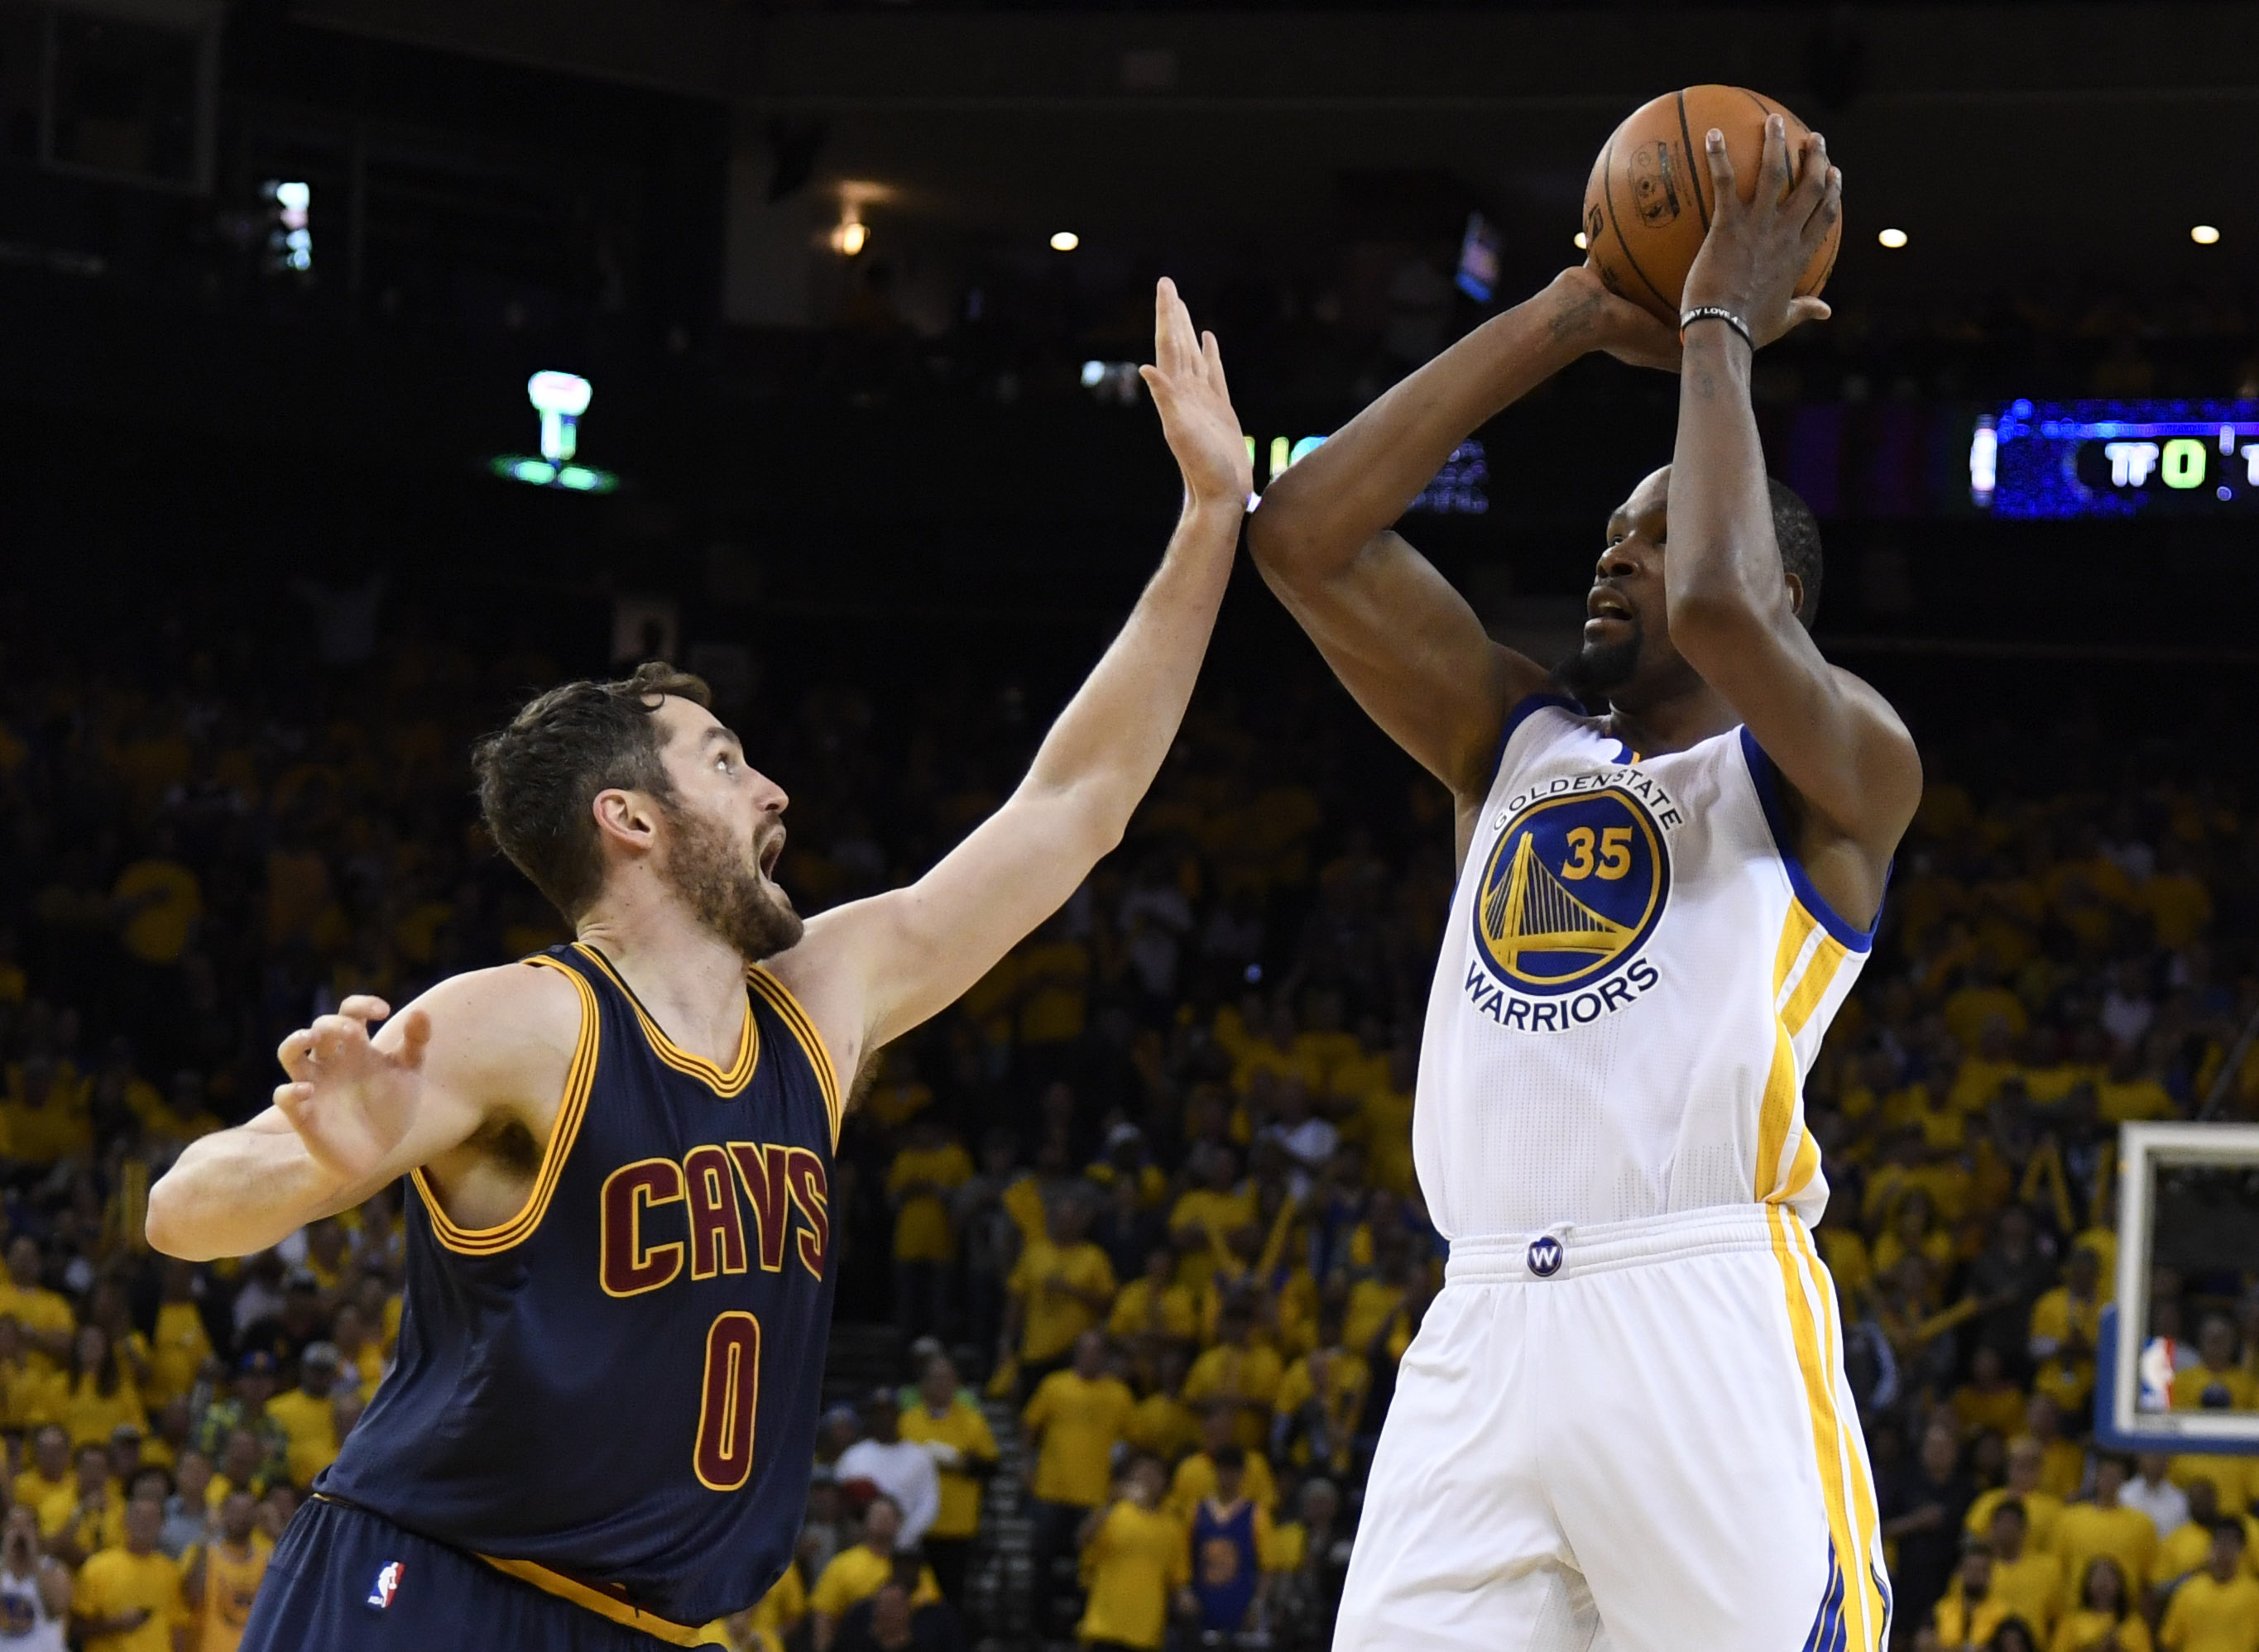 Golden State Warriors defeated the Cleveland Cavaliers 113-91 in Game 1